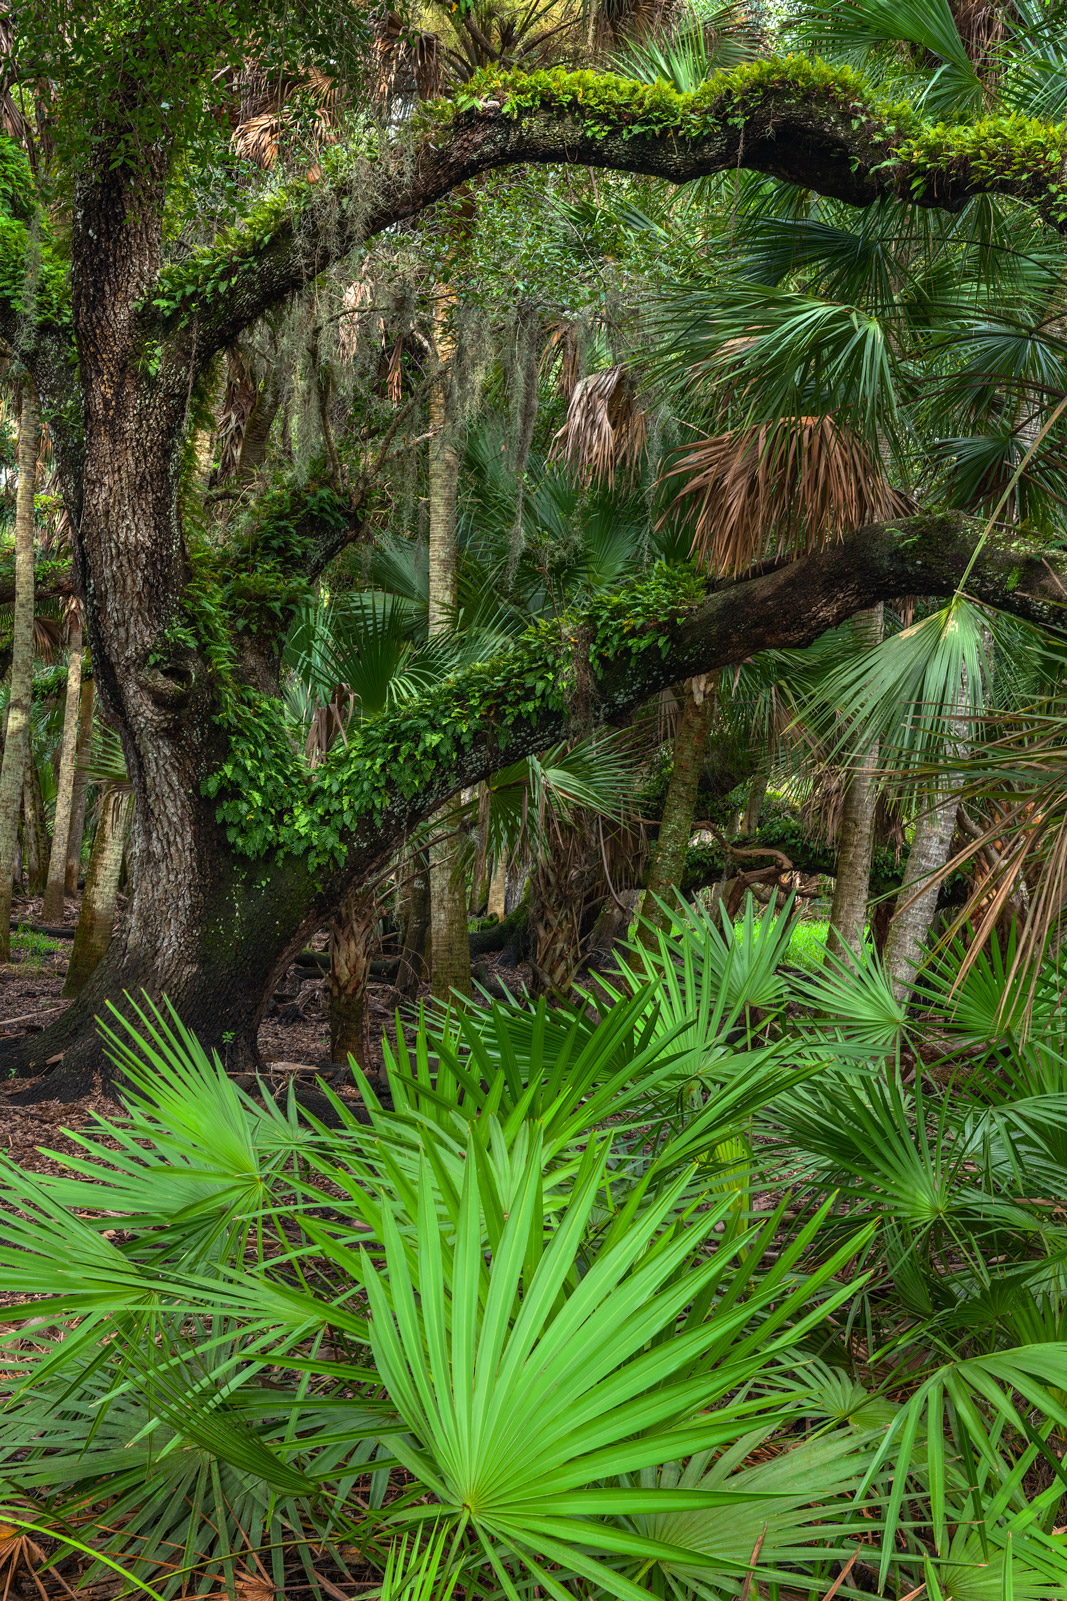 A Limited Edition, Fine Art photograph of Palmetto bushes and a large oak tree in the forest at Myakka River State Park, Florida...